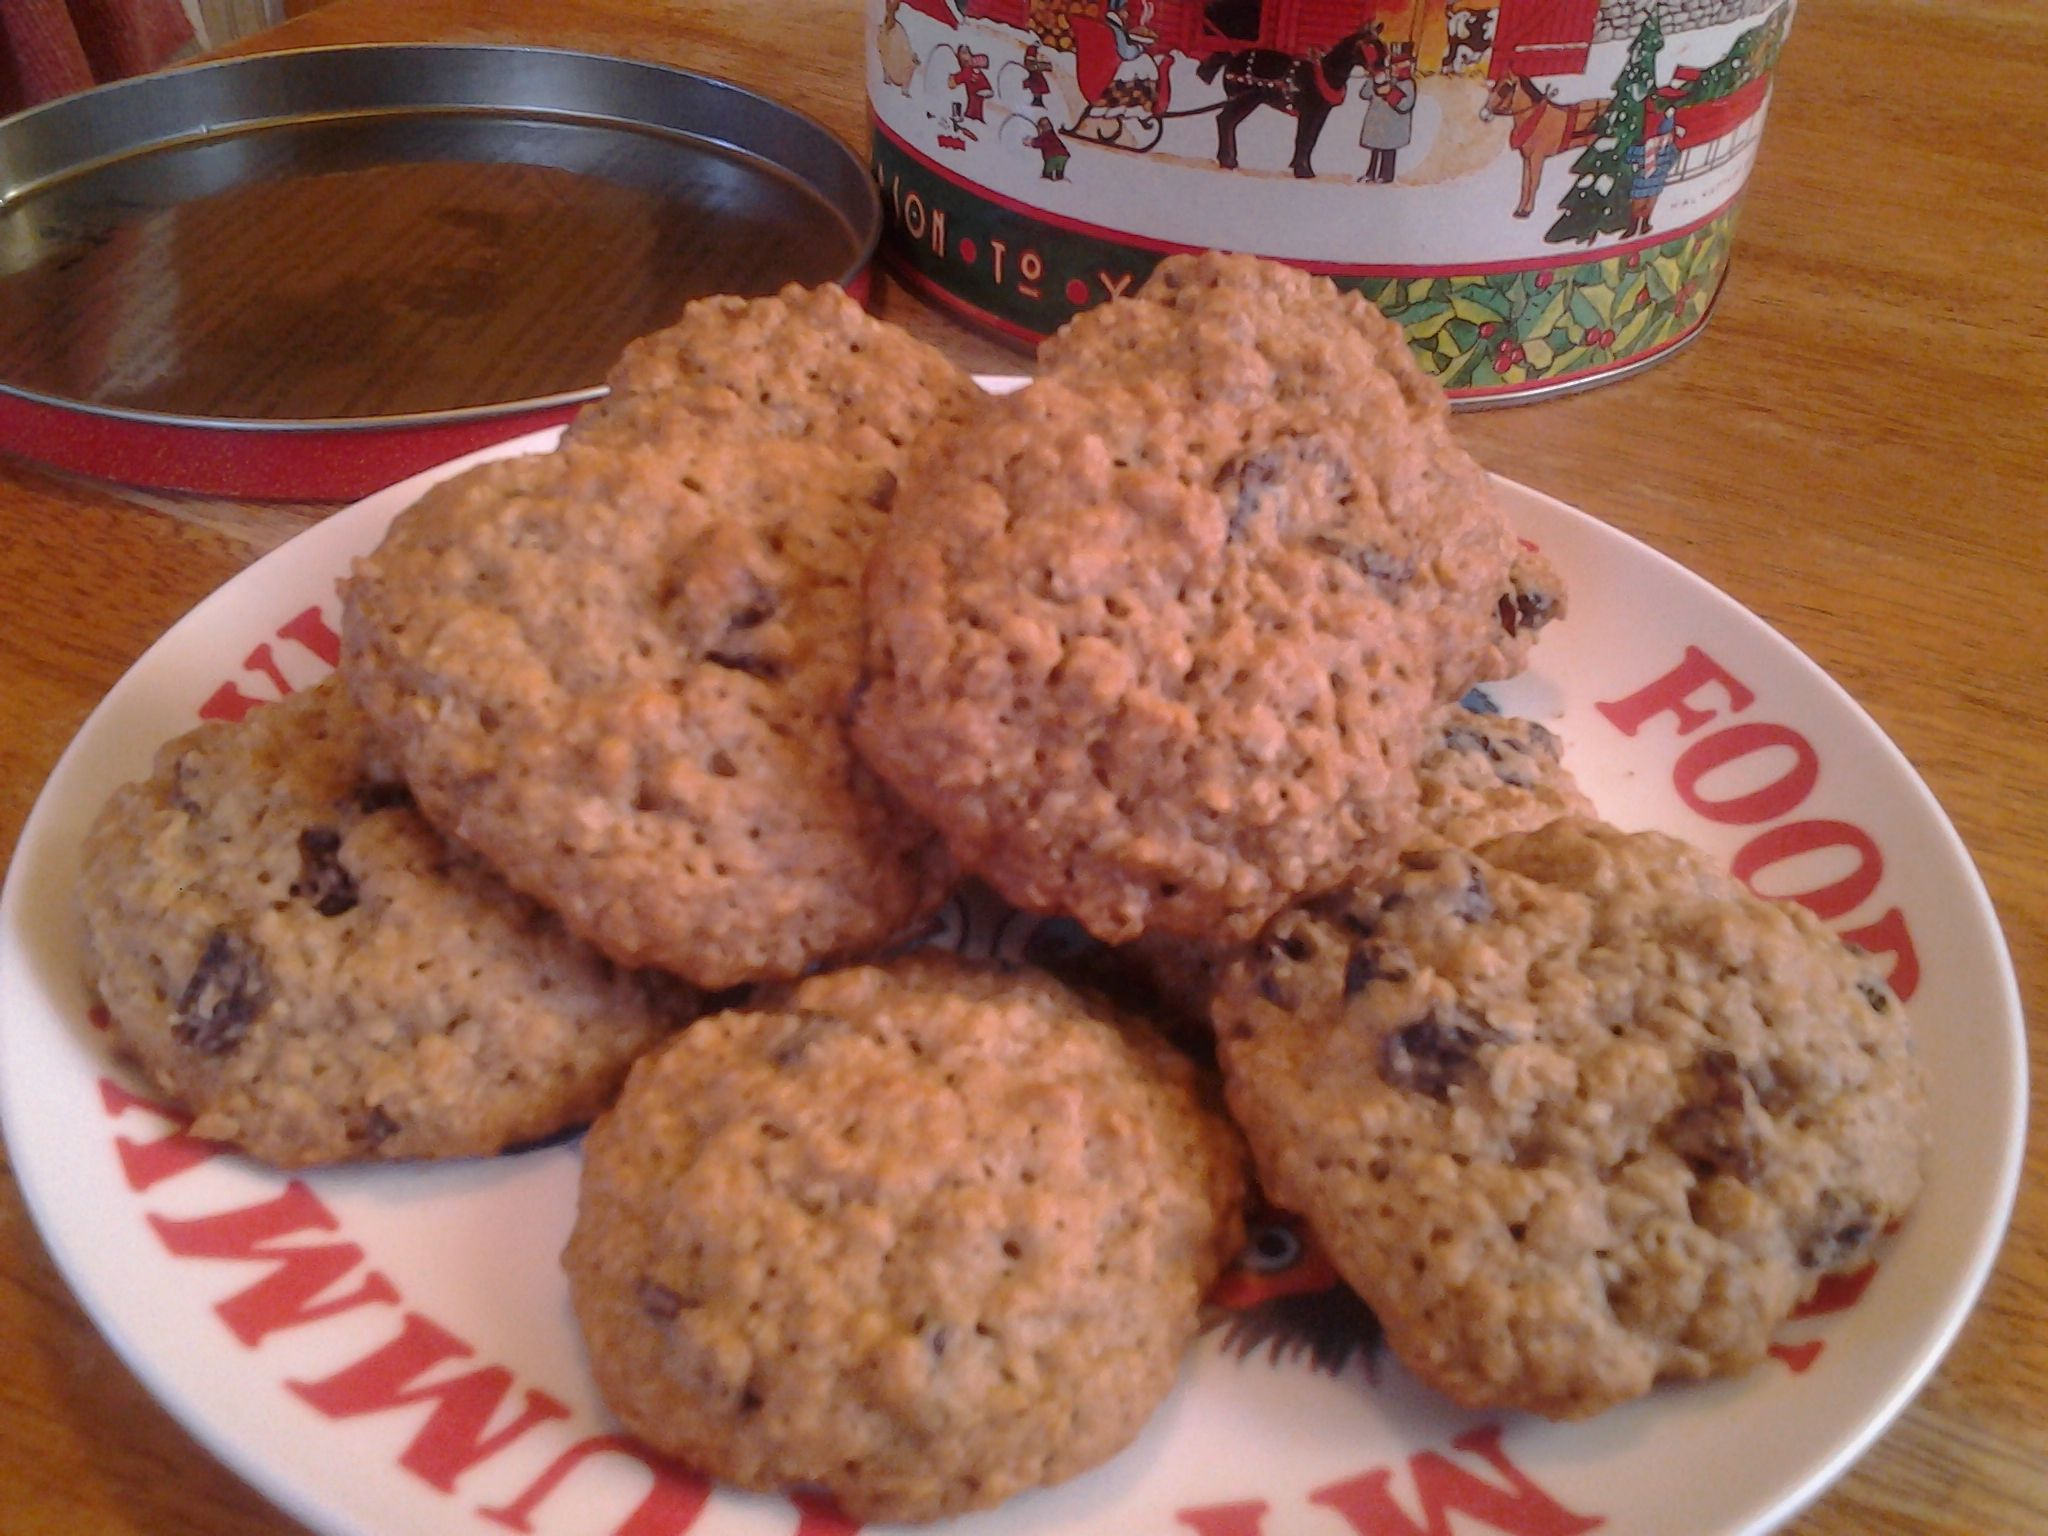 These Cookies Are Made With The Quaker Brand Vanishing Oatmeal